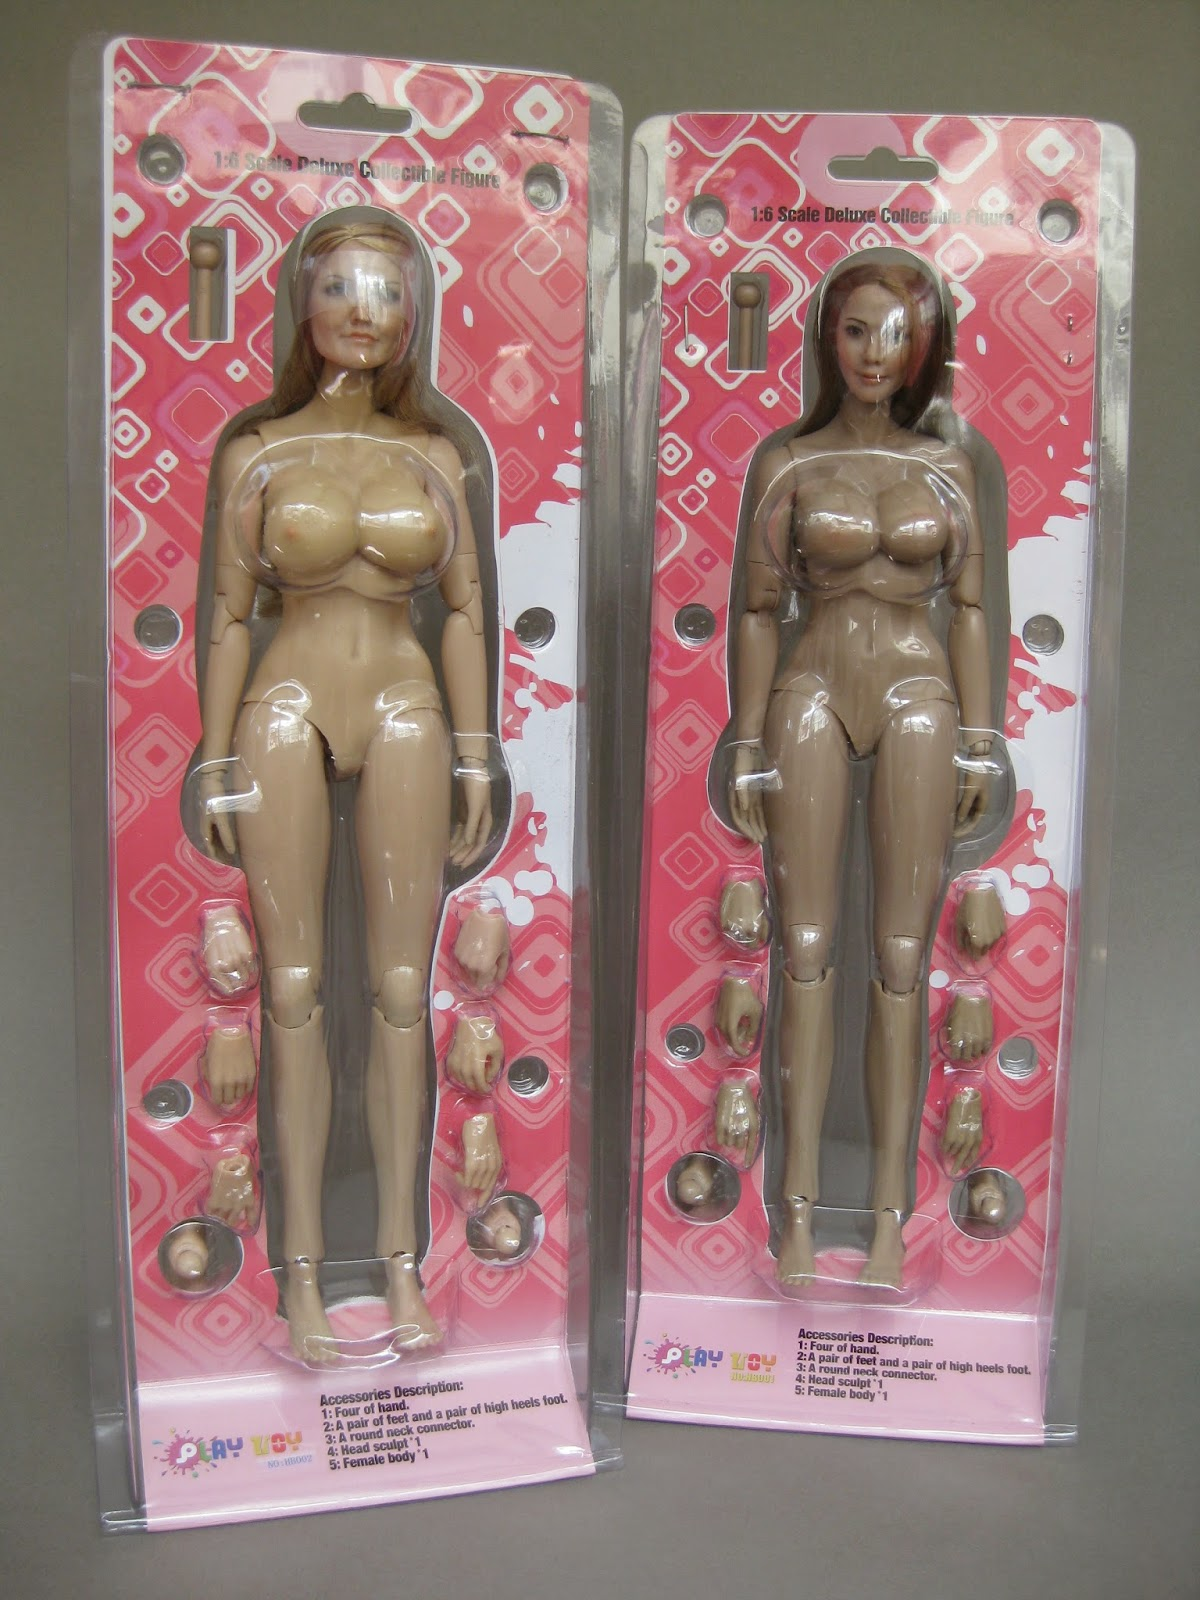 Message, matchless))) Play toy female body topic